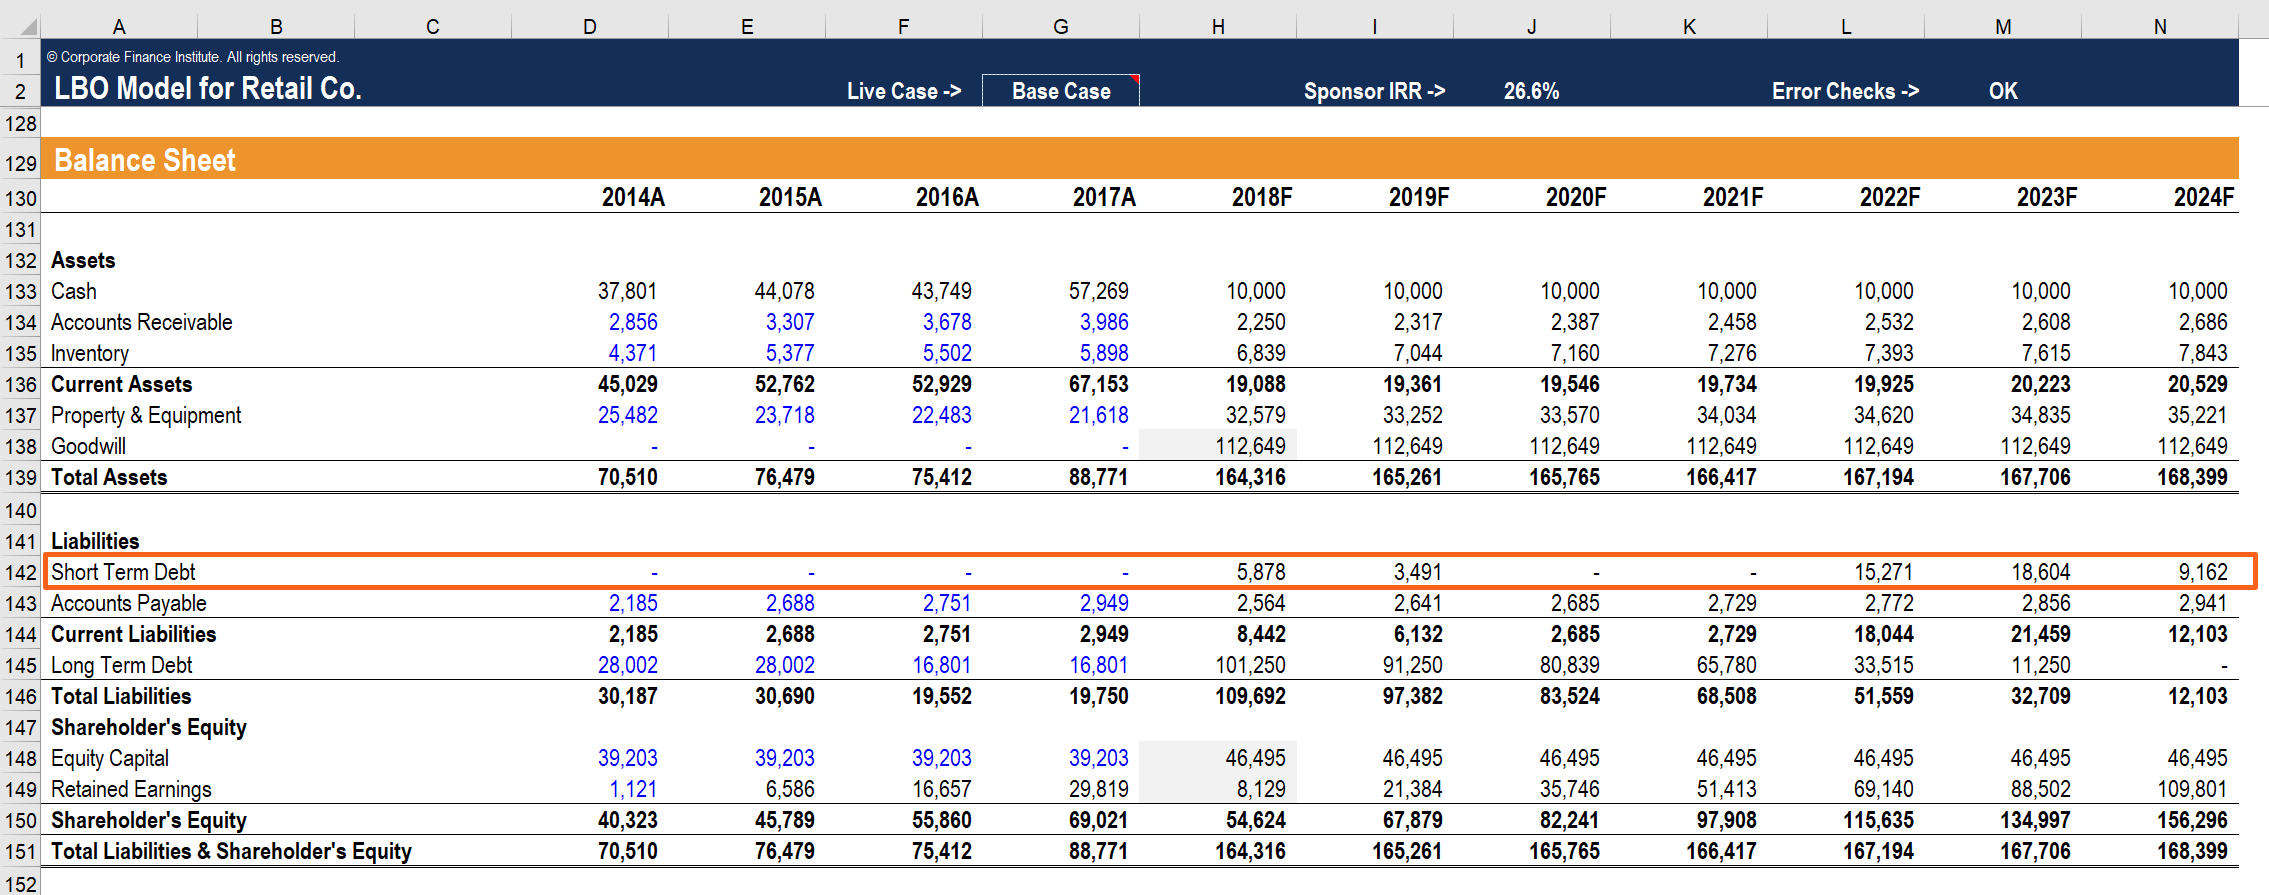 LBO model balance sheet current debt